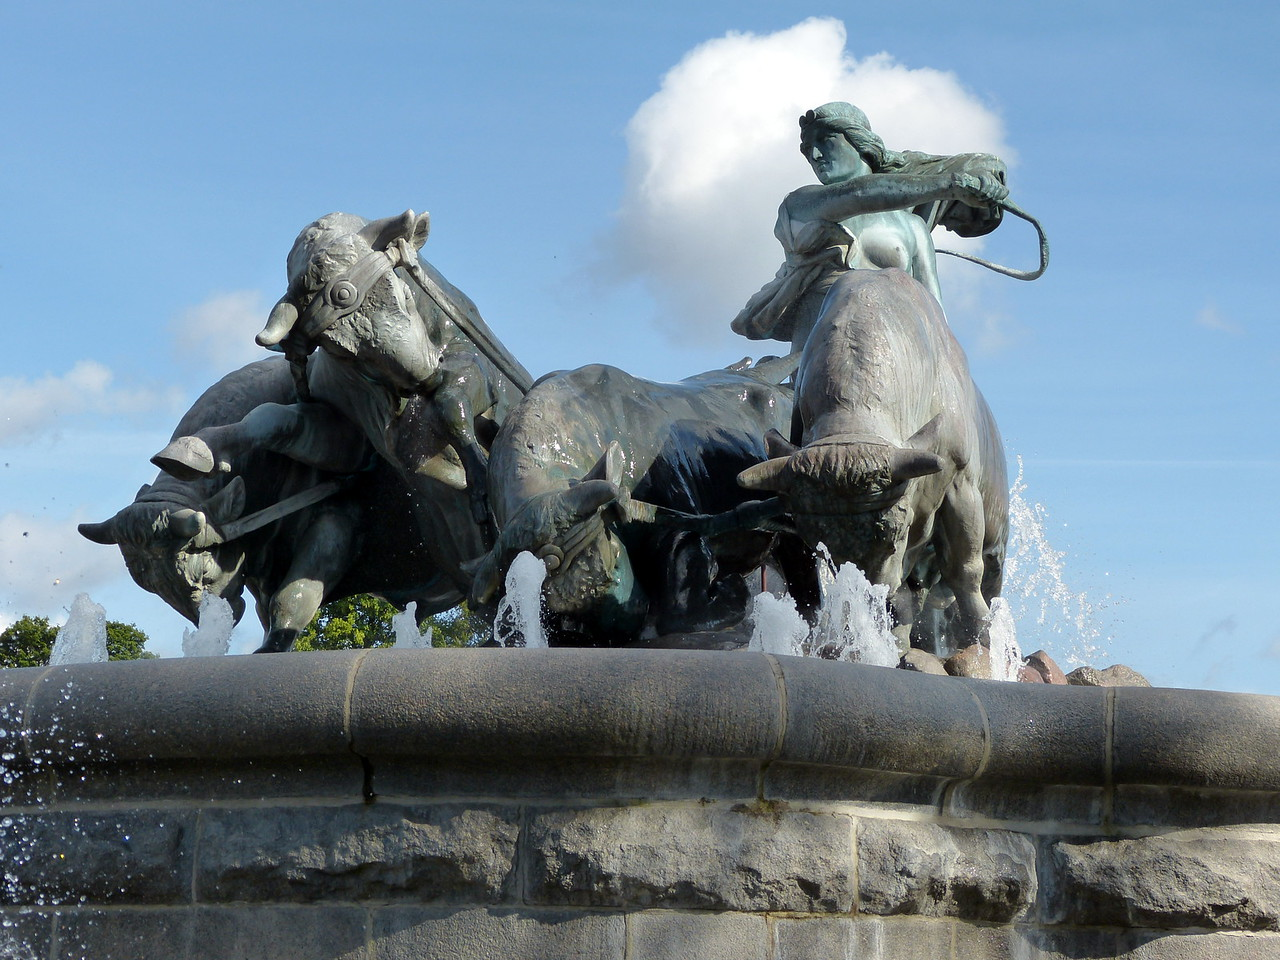 The Gefion Fountain is a large fountain on the harbour front. It features a large-scale group of animal figures being driven by the legendary Norse goddess, Gefjun. It is located in Langelinie Park next to Kastellet and is the largest monument in Copenhagen and used as a wishing well. According to an ancient legend, Gefion was the goddess who ploughed the island of Zealand out of Sweden. The Swedish king Gylfe offered the goddess Gefion as much land as she was capable of ploughing within one day and one night. A bit of Sweden Gefion received help only from four oxen. She had transformed her four sons into immensely powerful oxen and had them plough so deeply in the ground that they raised the land and pulled it into the sea. This is how the island of Zealand was created. The lake Vännern in Sweden approximately resembles the shape of Zealand, proving that there must be some truth in the story. The fountain underwent extensive renovations starting in 1999.